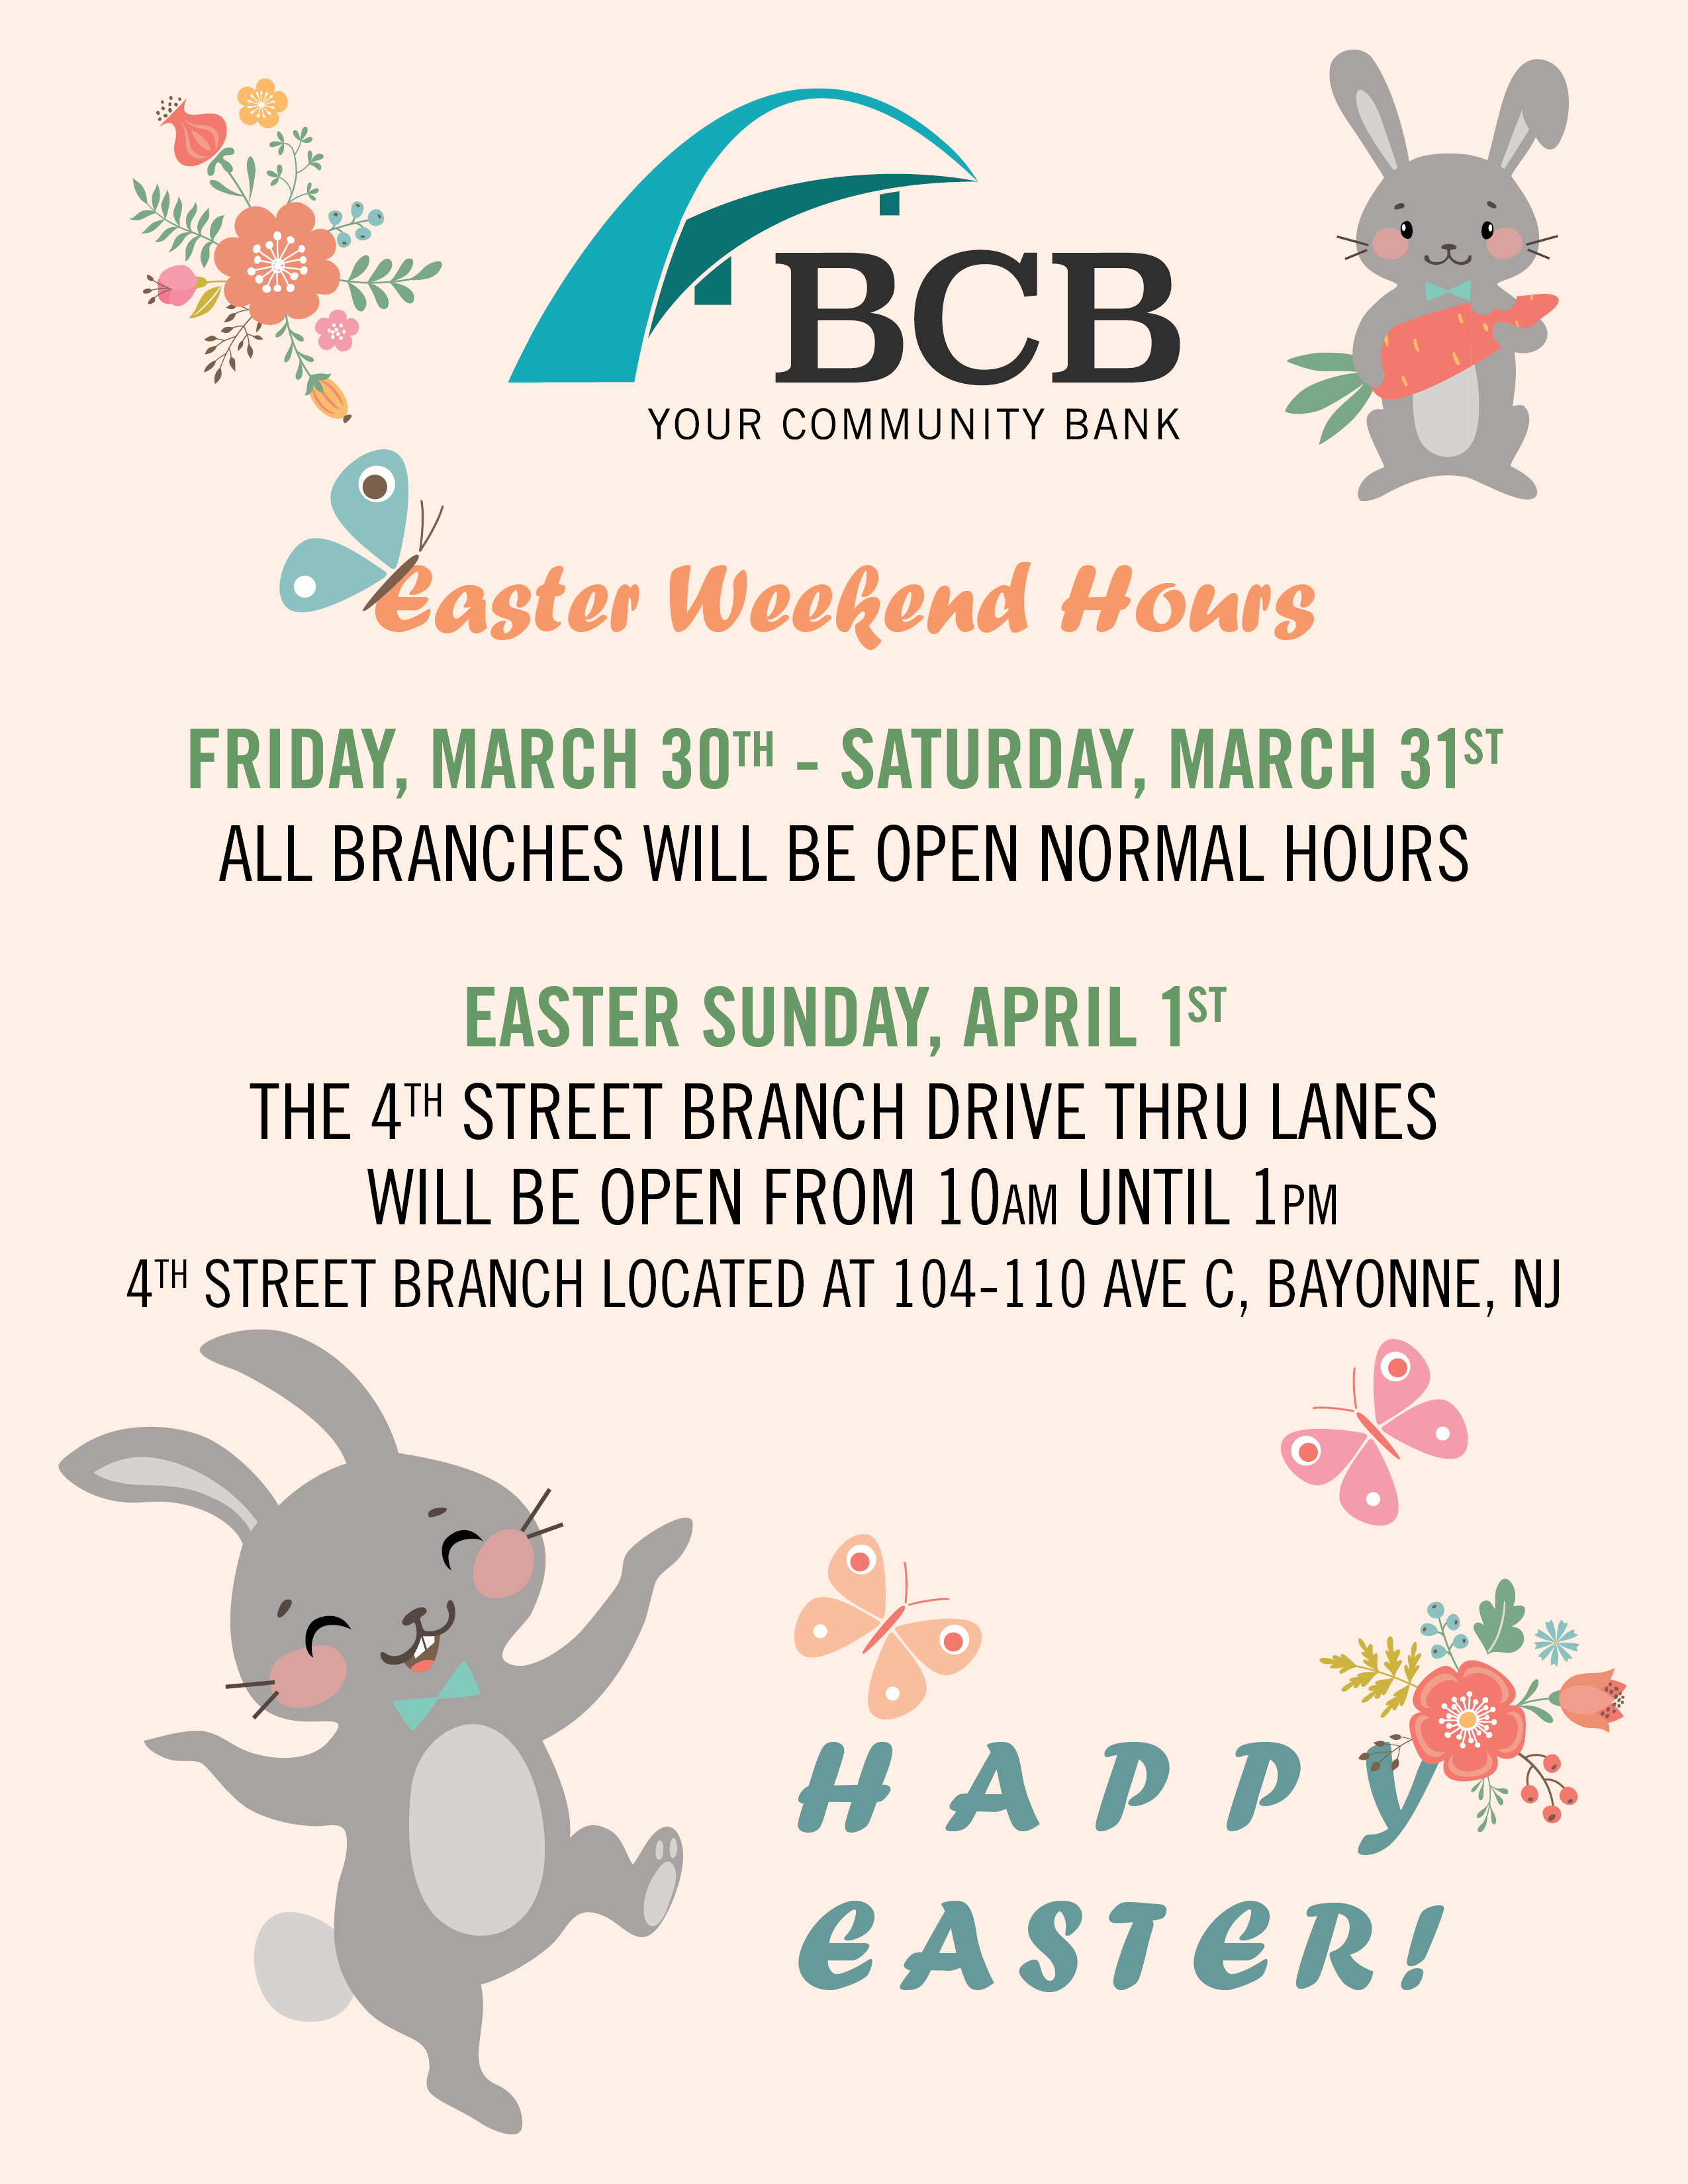 Happy Easter Weekend Hours